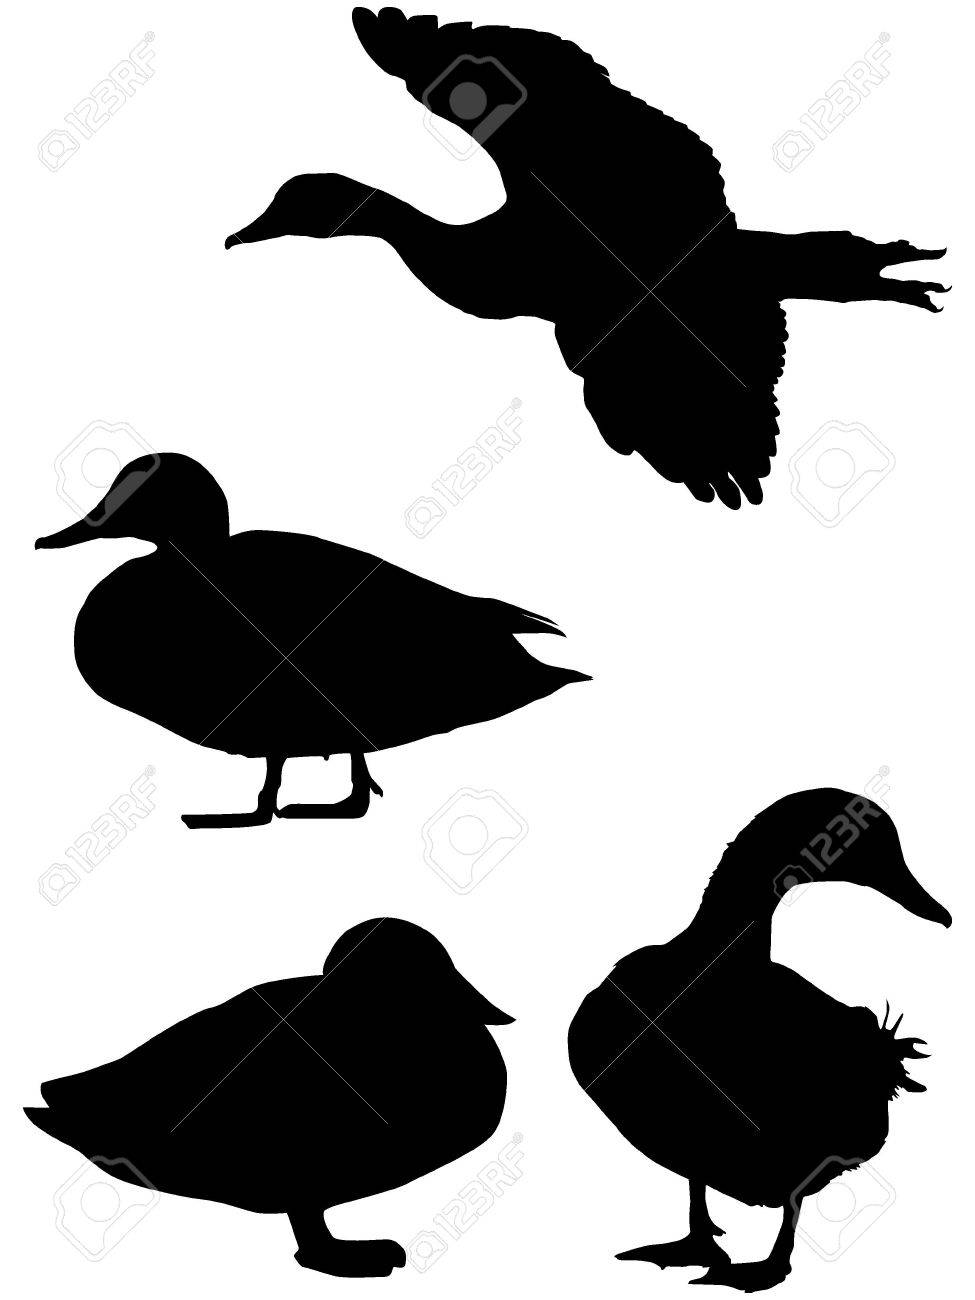 silhouette of a duck royalty free cliparts vectors and stock